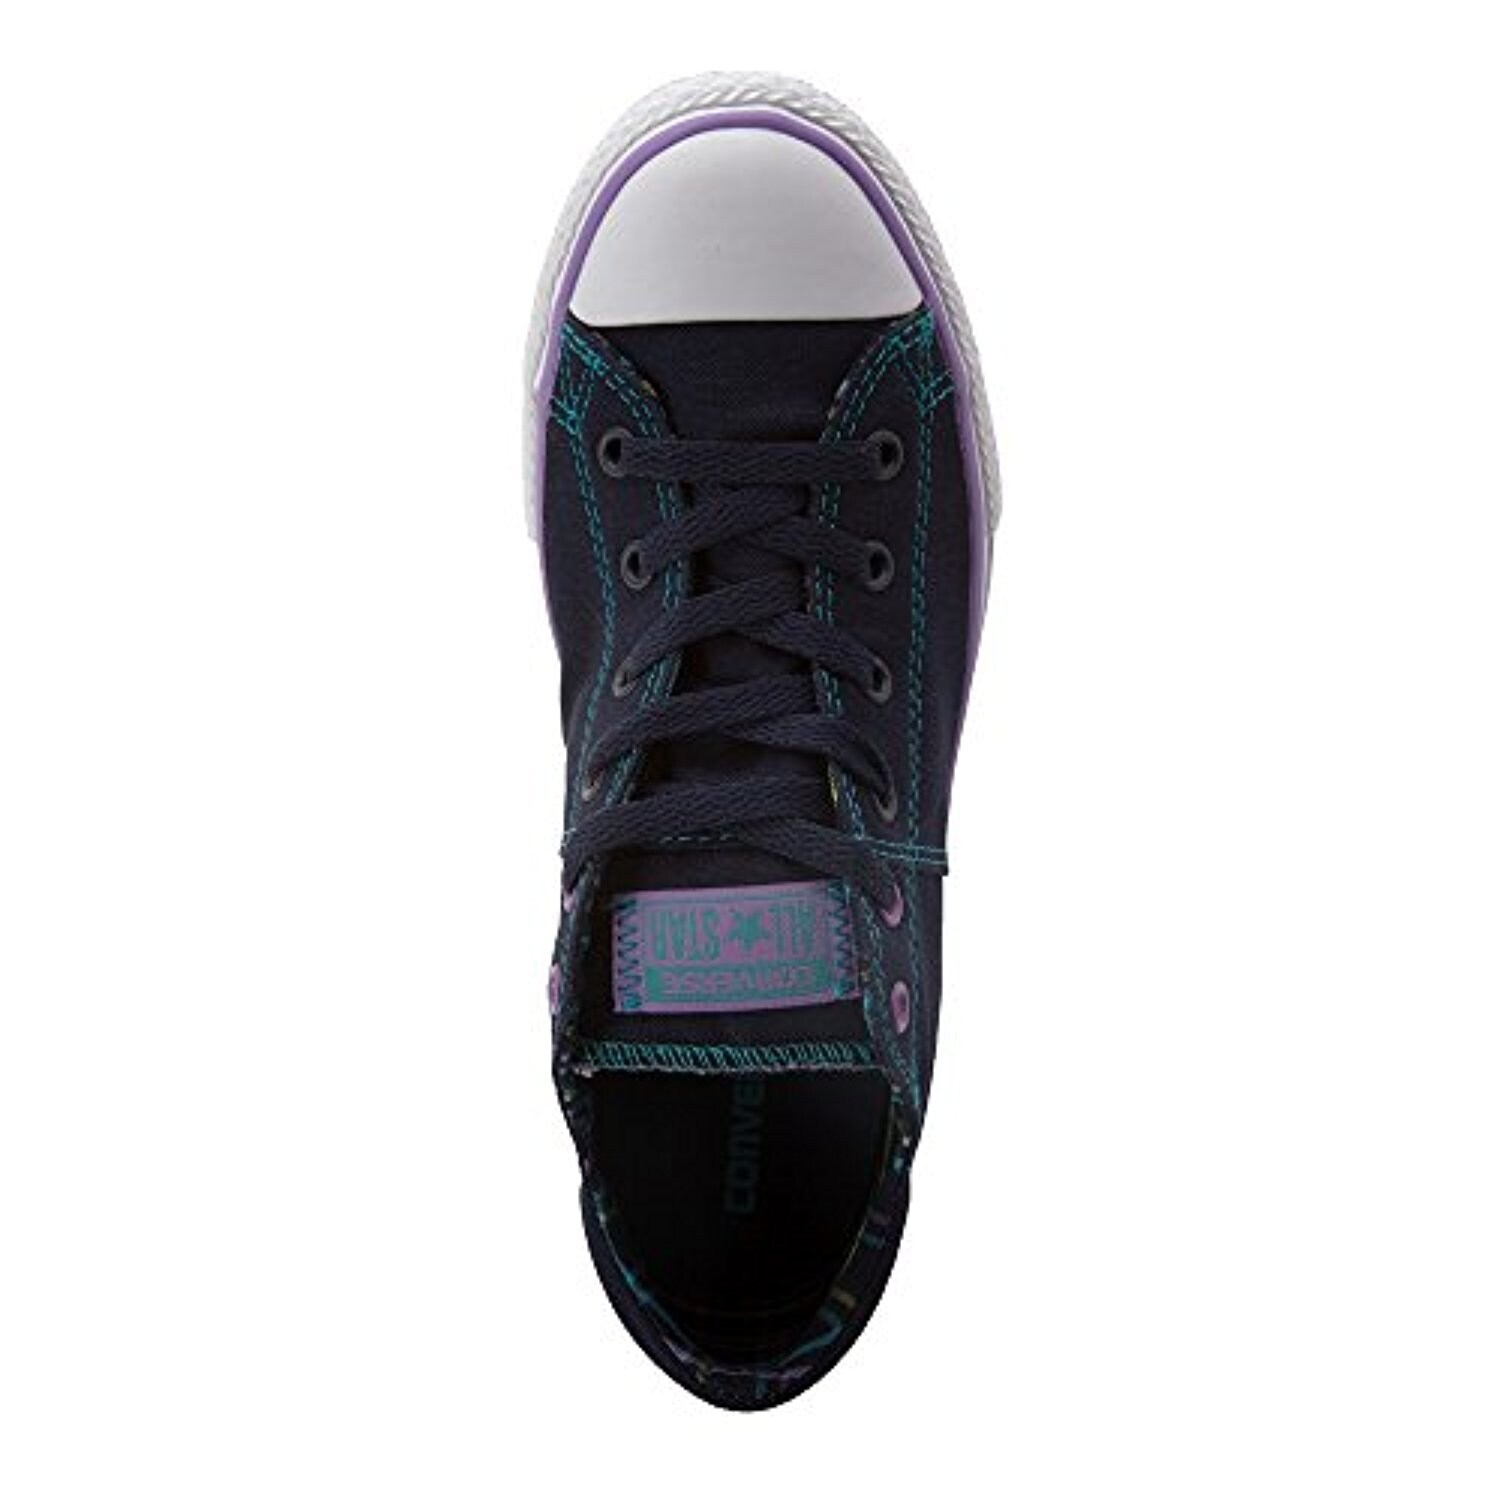 72446a7a2501 Shop Converse Kid s Chuck Taylor All Star Madison Ox Fashion Sneaker Shoe -  Obsidian White Frozen Lilac - Boys - 4 Big Kid M - Free Shipping Today ...